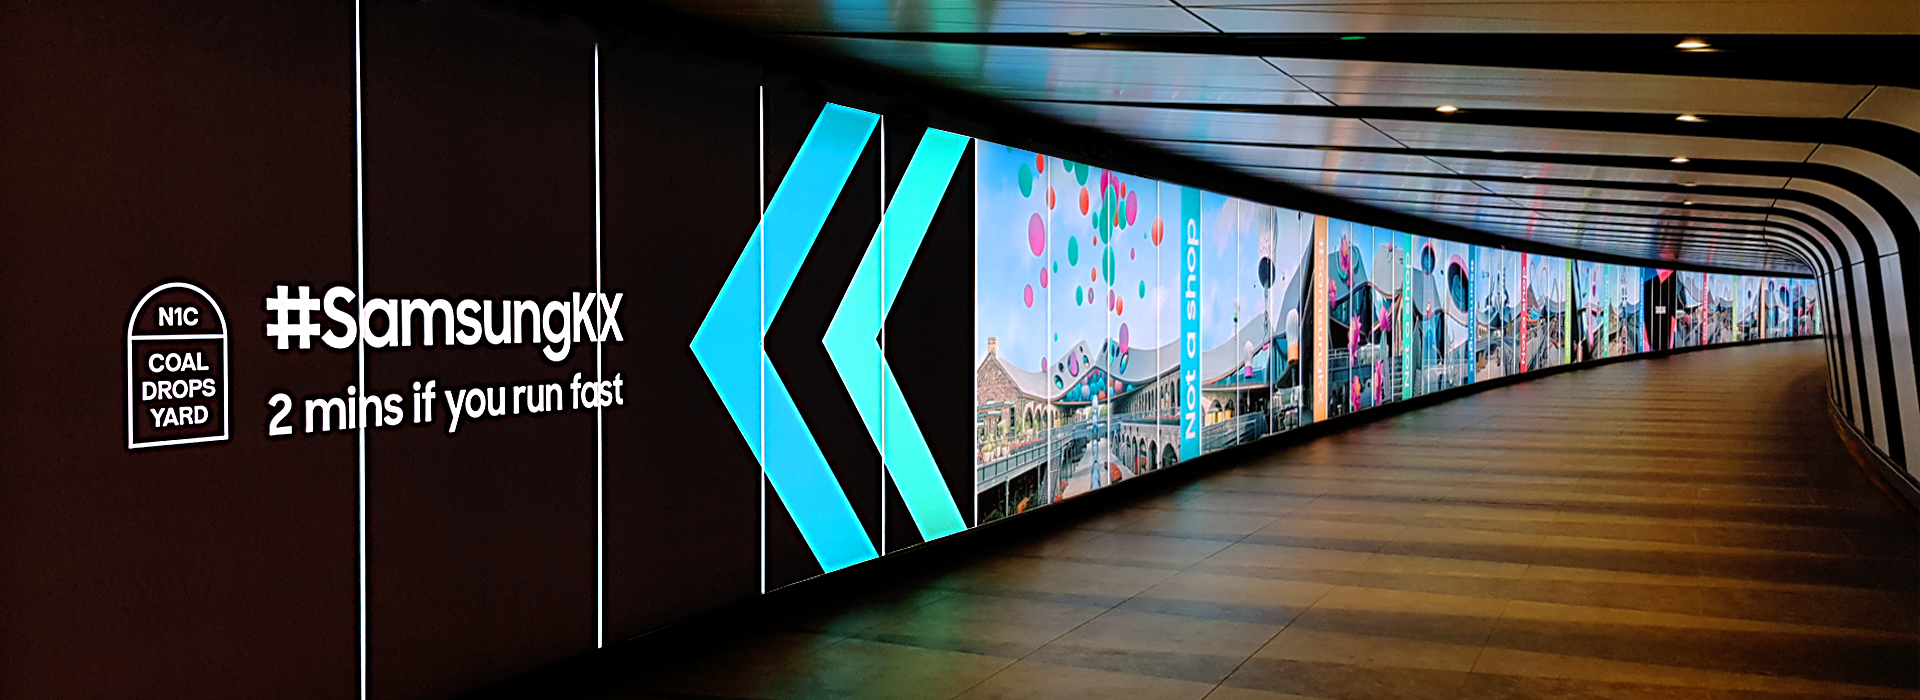 Samsung Tunnel Graphic Kings Cross London